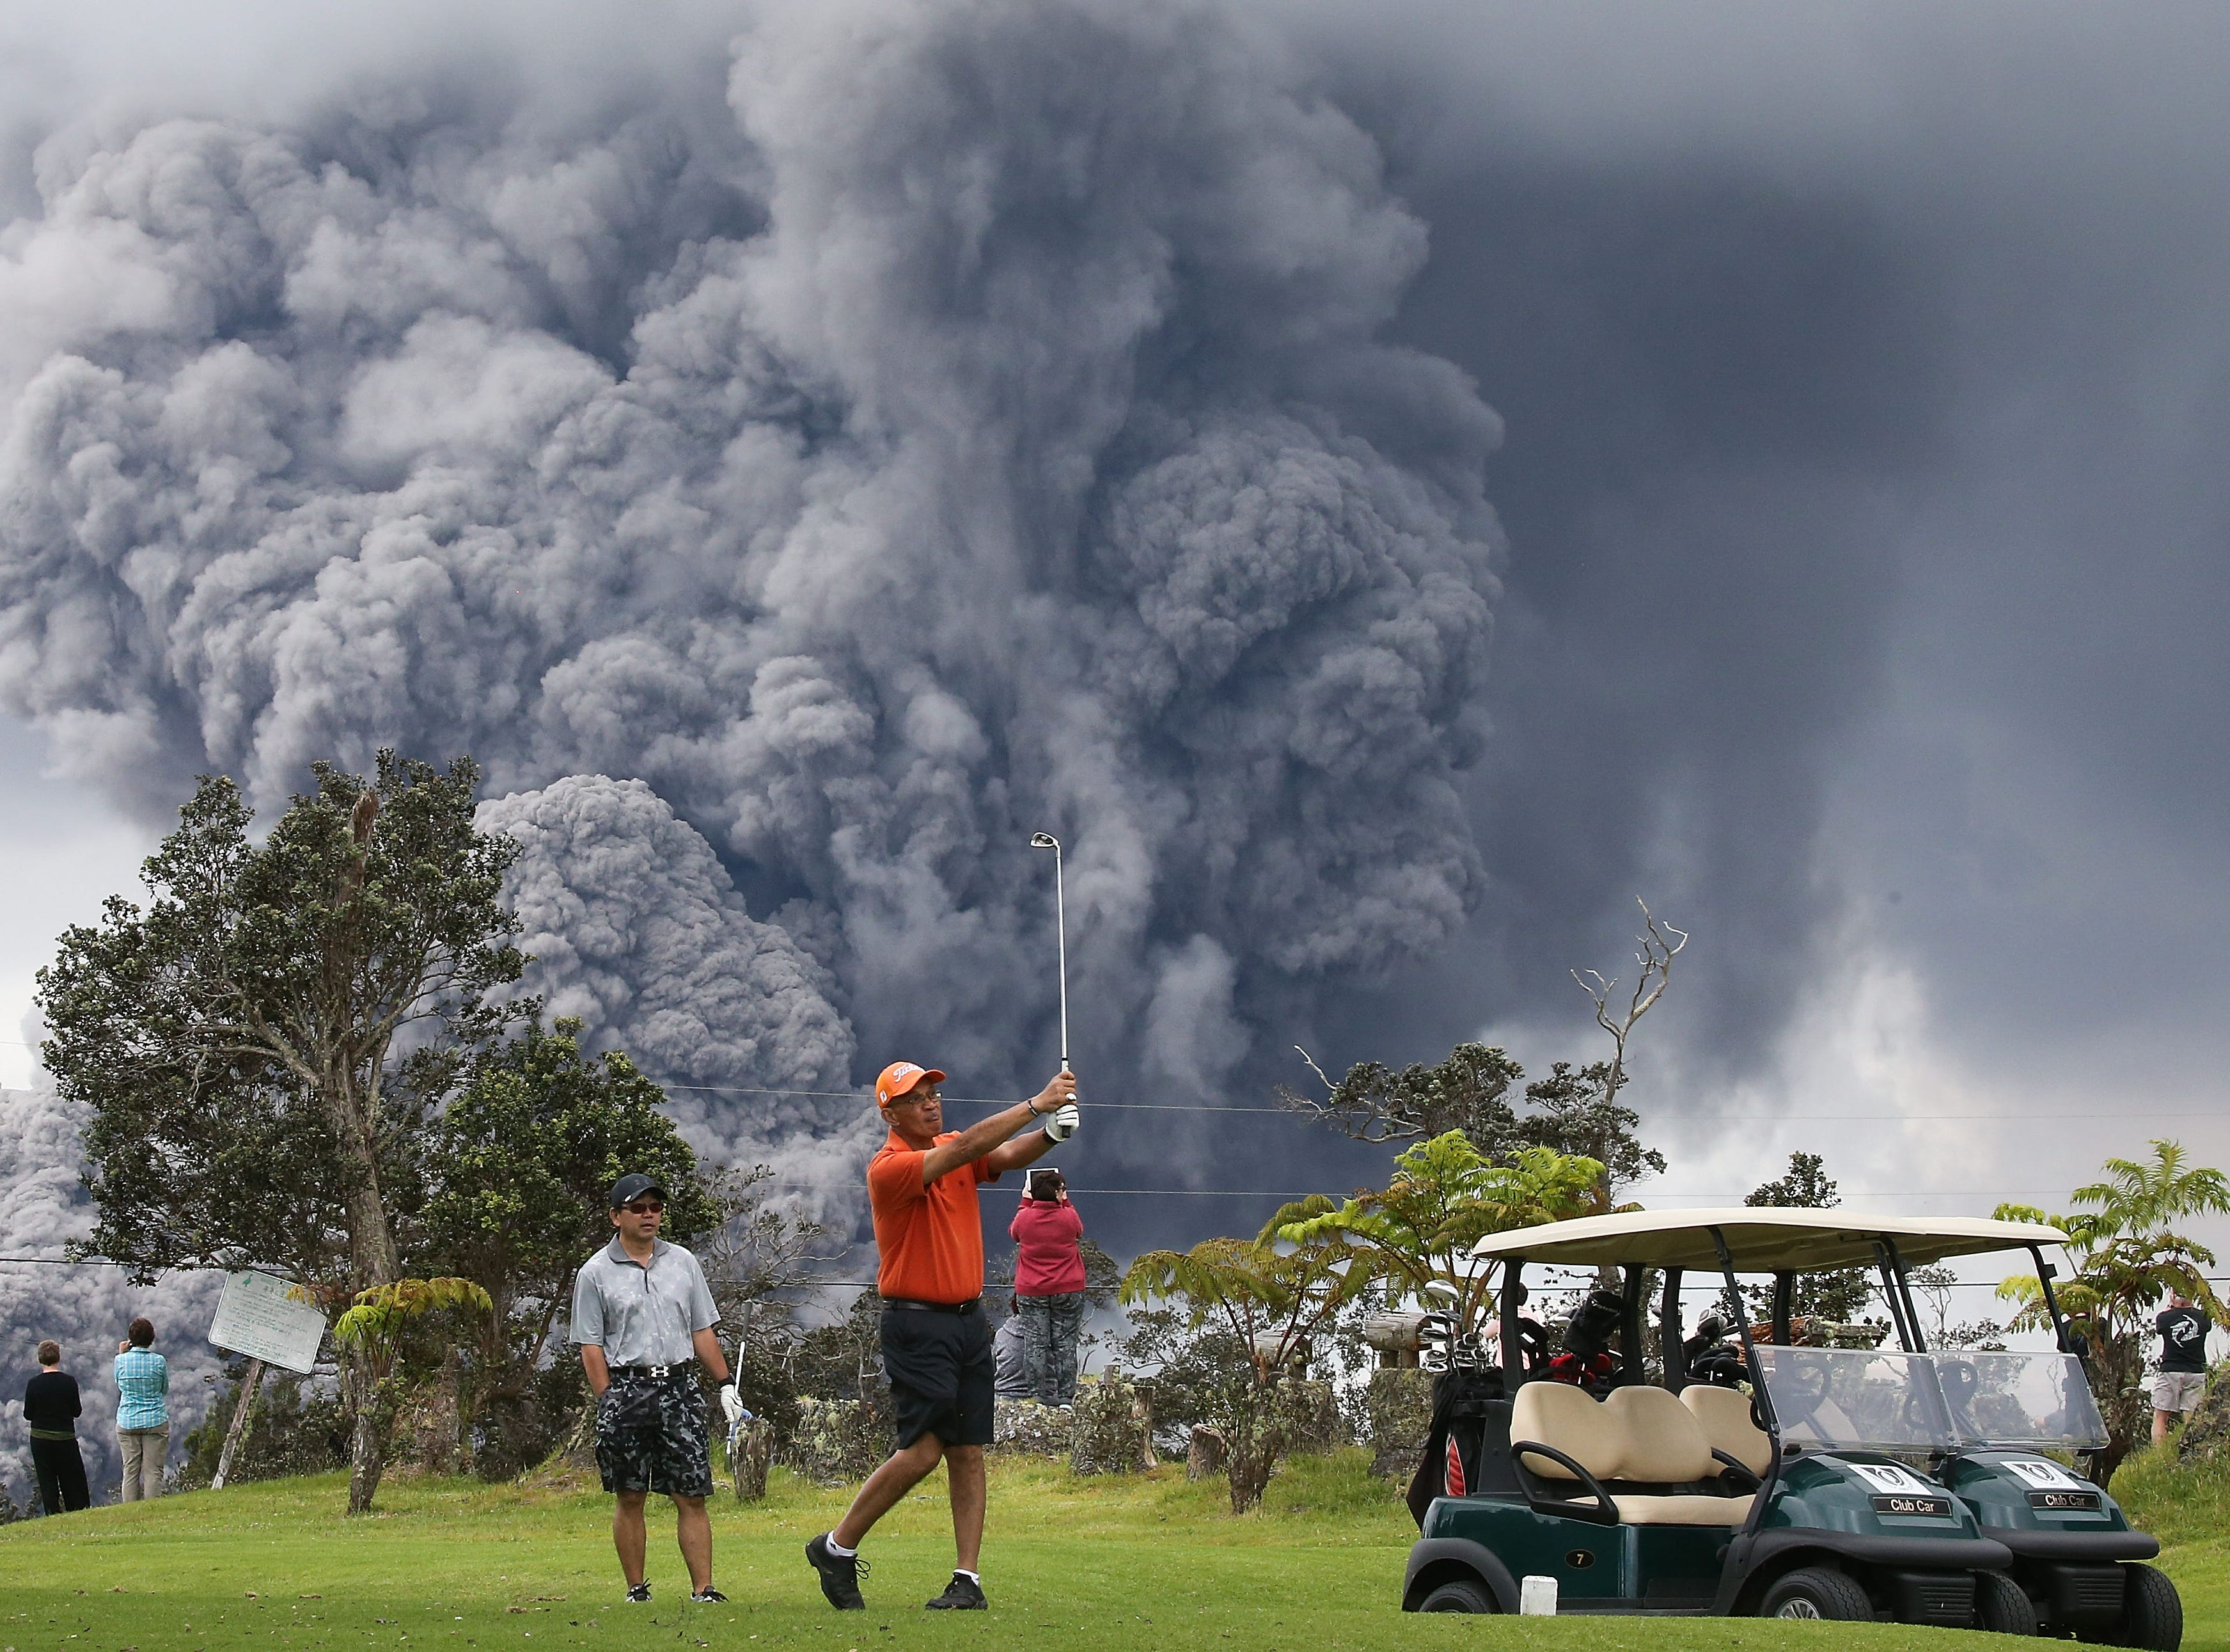 """May 15, 2018: People play golf as an ash plume rises in the distance from the Kilauea volcano on Hawaii's Big Island in Hawaii Volcanoes National Park, Hawaii. The U.S. Geological Survey said a recent lowering of the lava lake at the volcano's Halemaumau crater """"has raised the potential for explosive eruptions"""" at the volcano."""